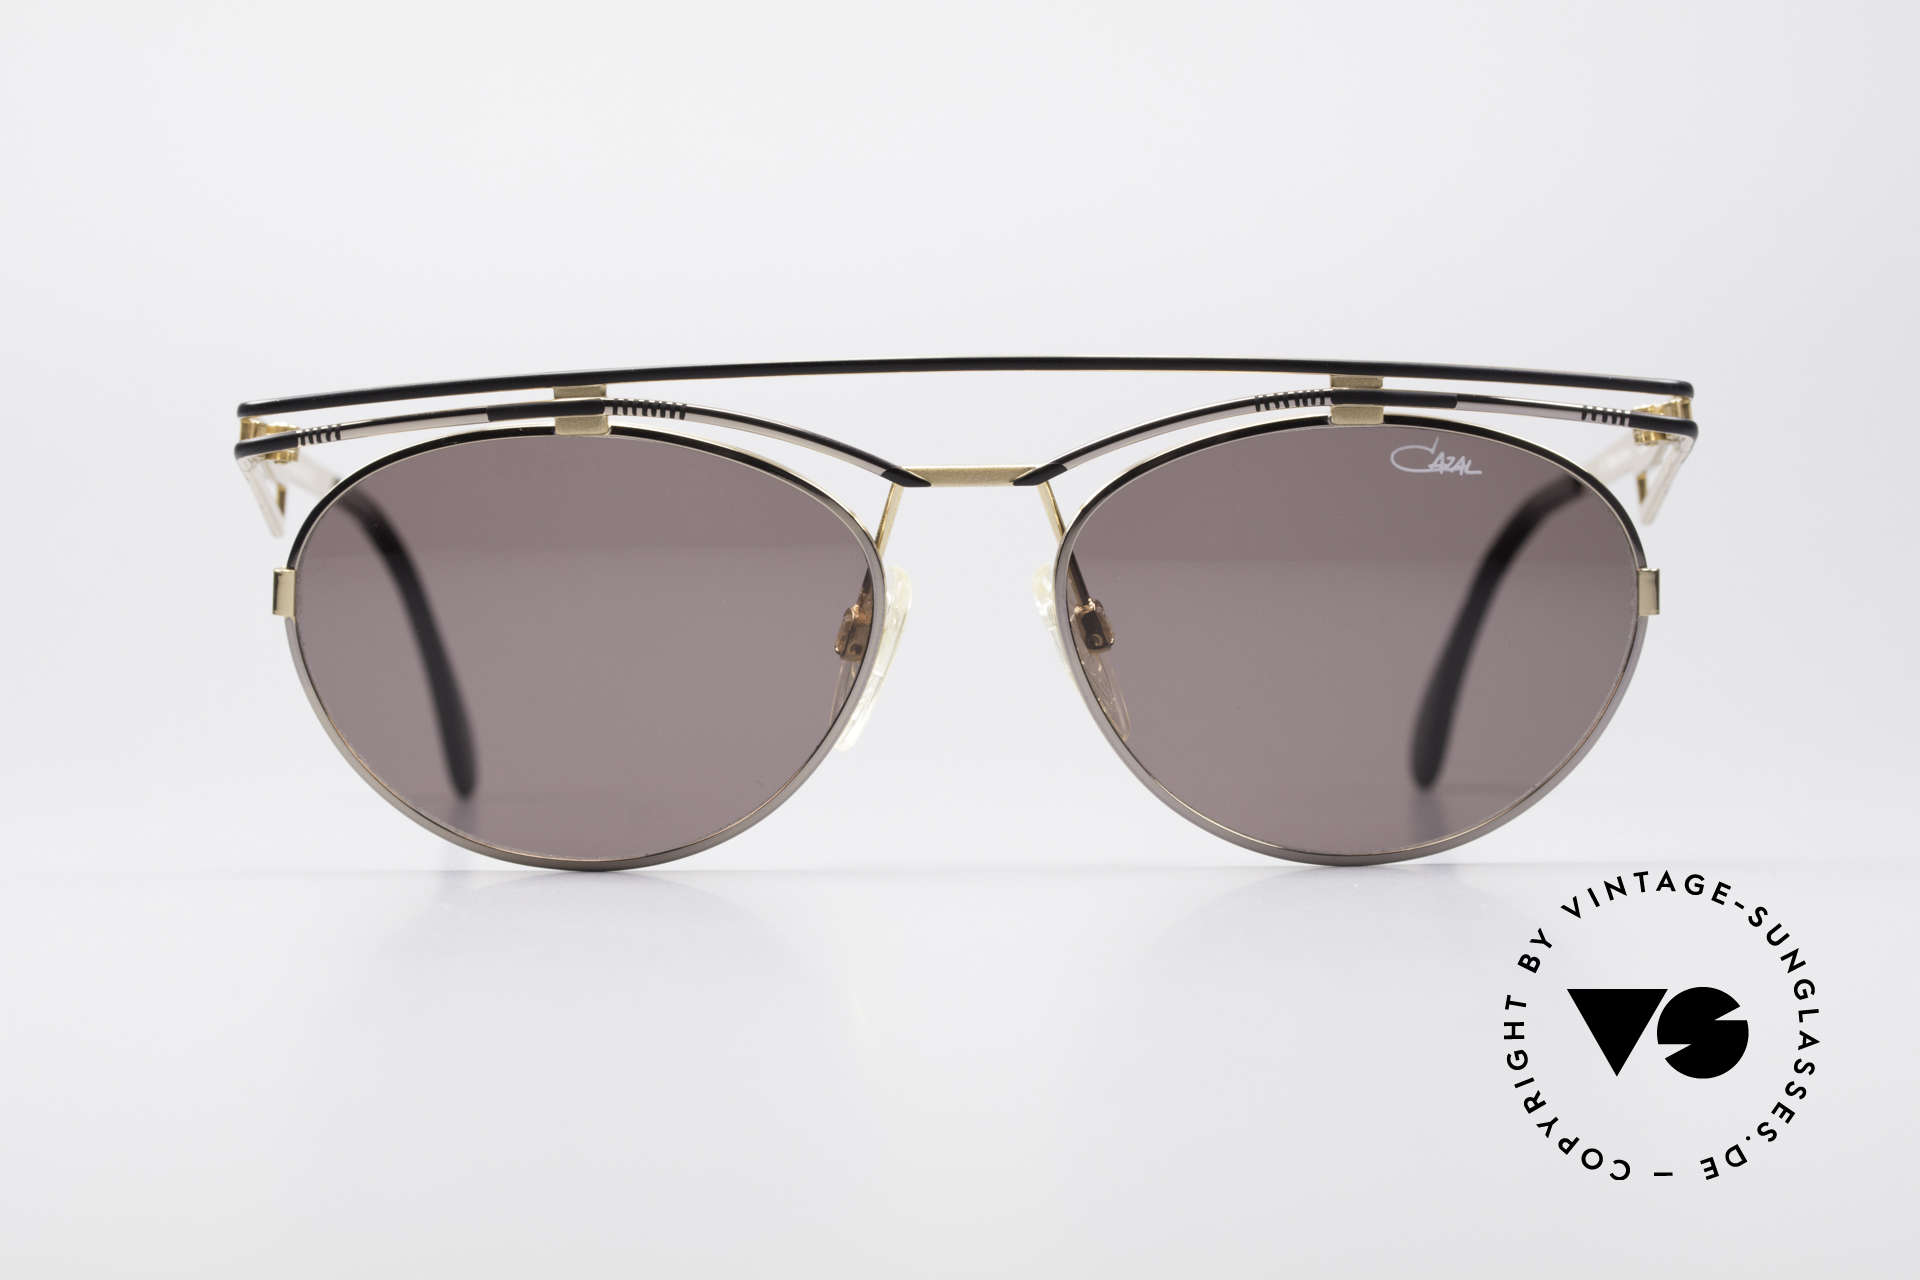 Cazal 970 Extraordinary Ladies Shades, playful metal frame construction - pure extravagance!, Made for Women